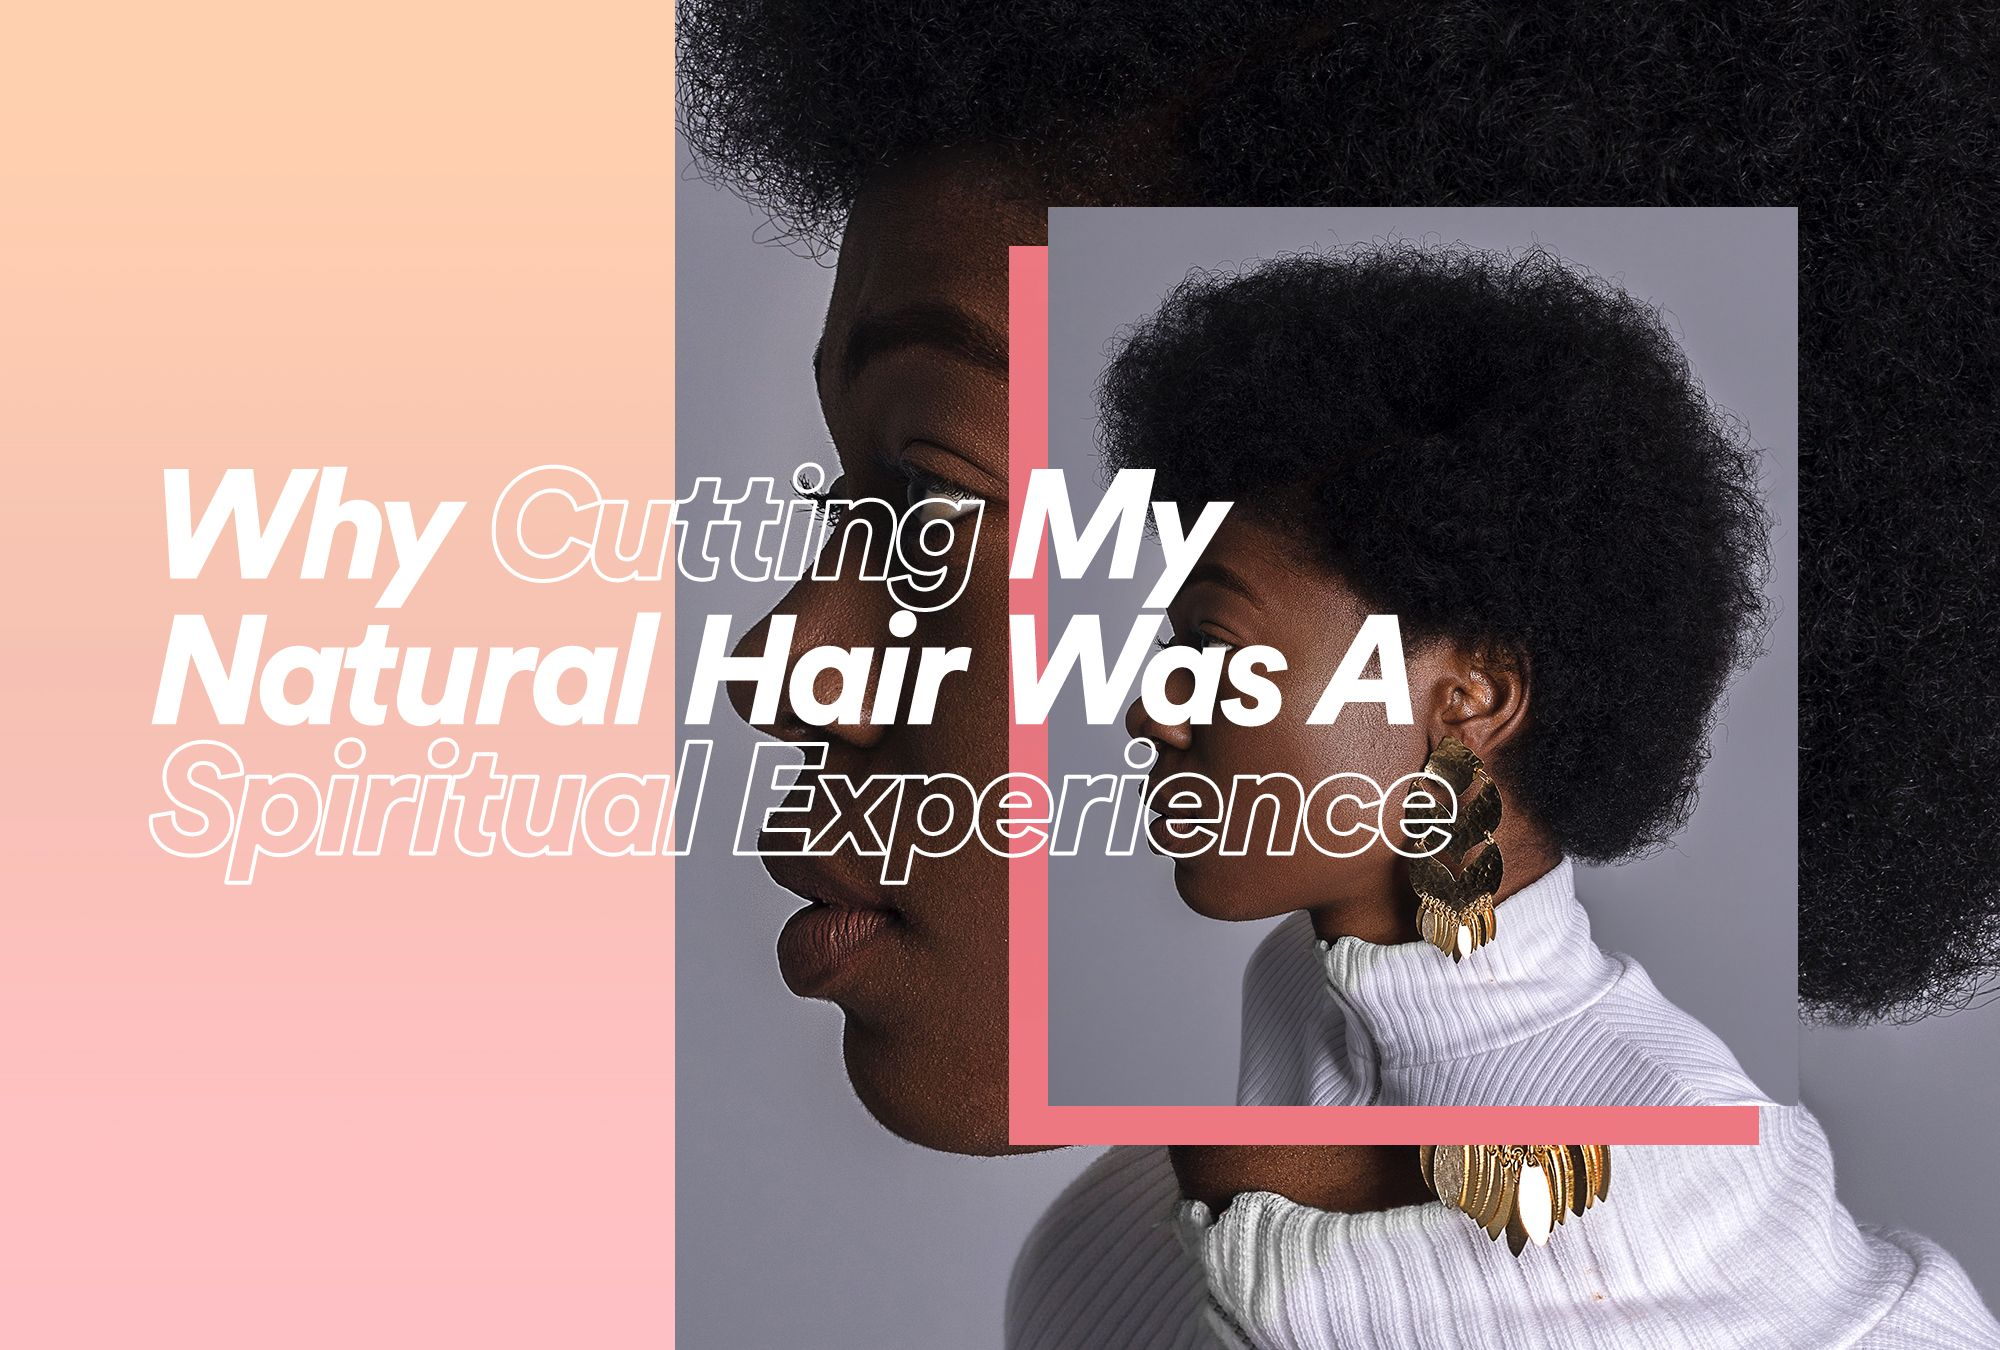 Why Cutting My Natural Hair Was a Spiritual Experience